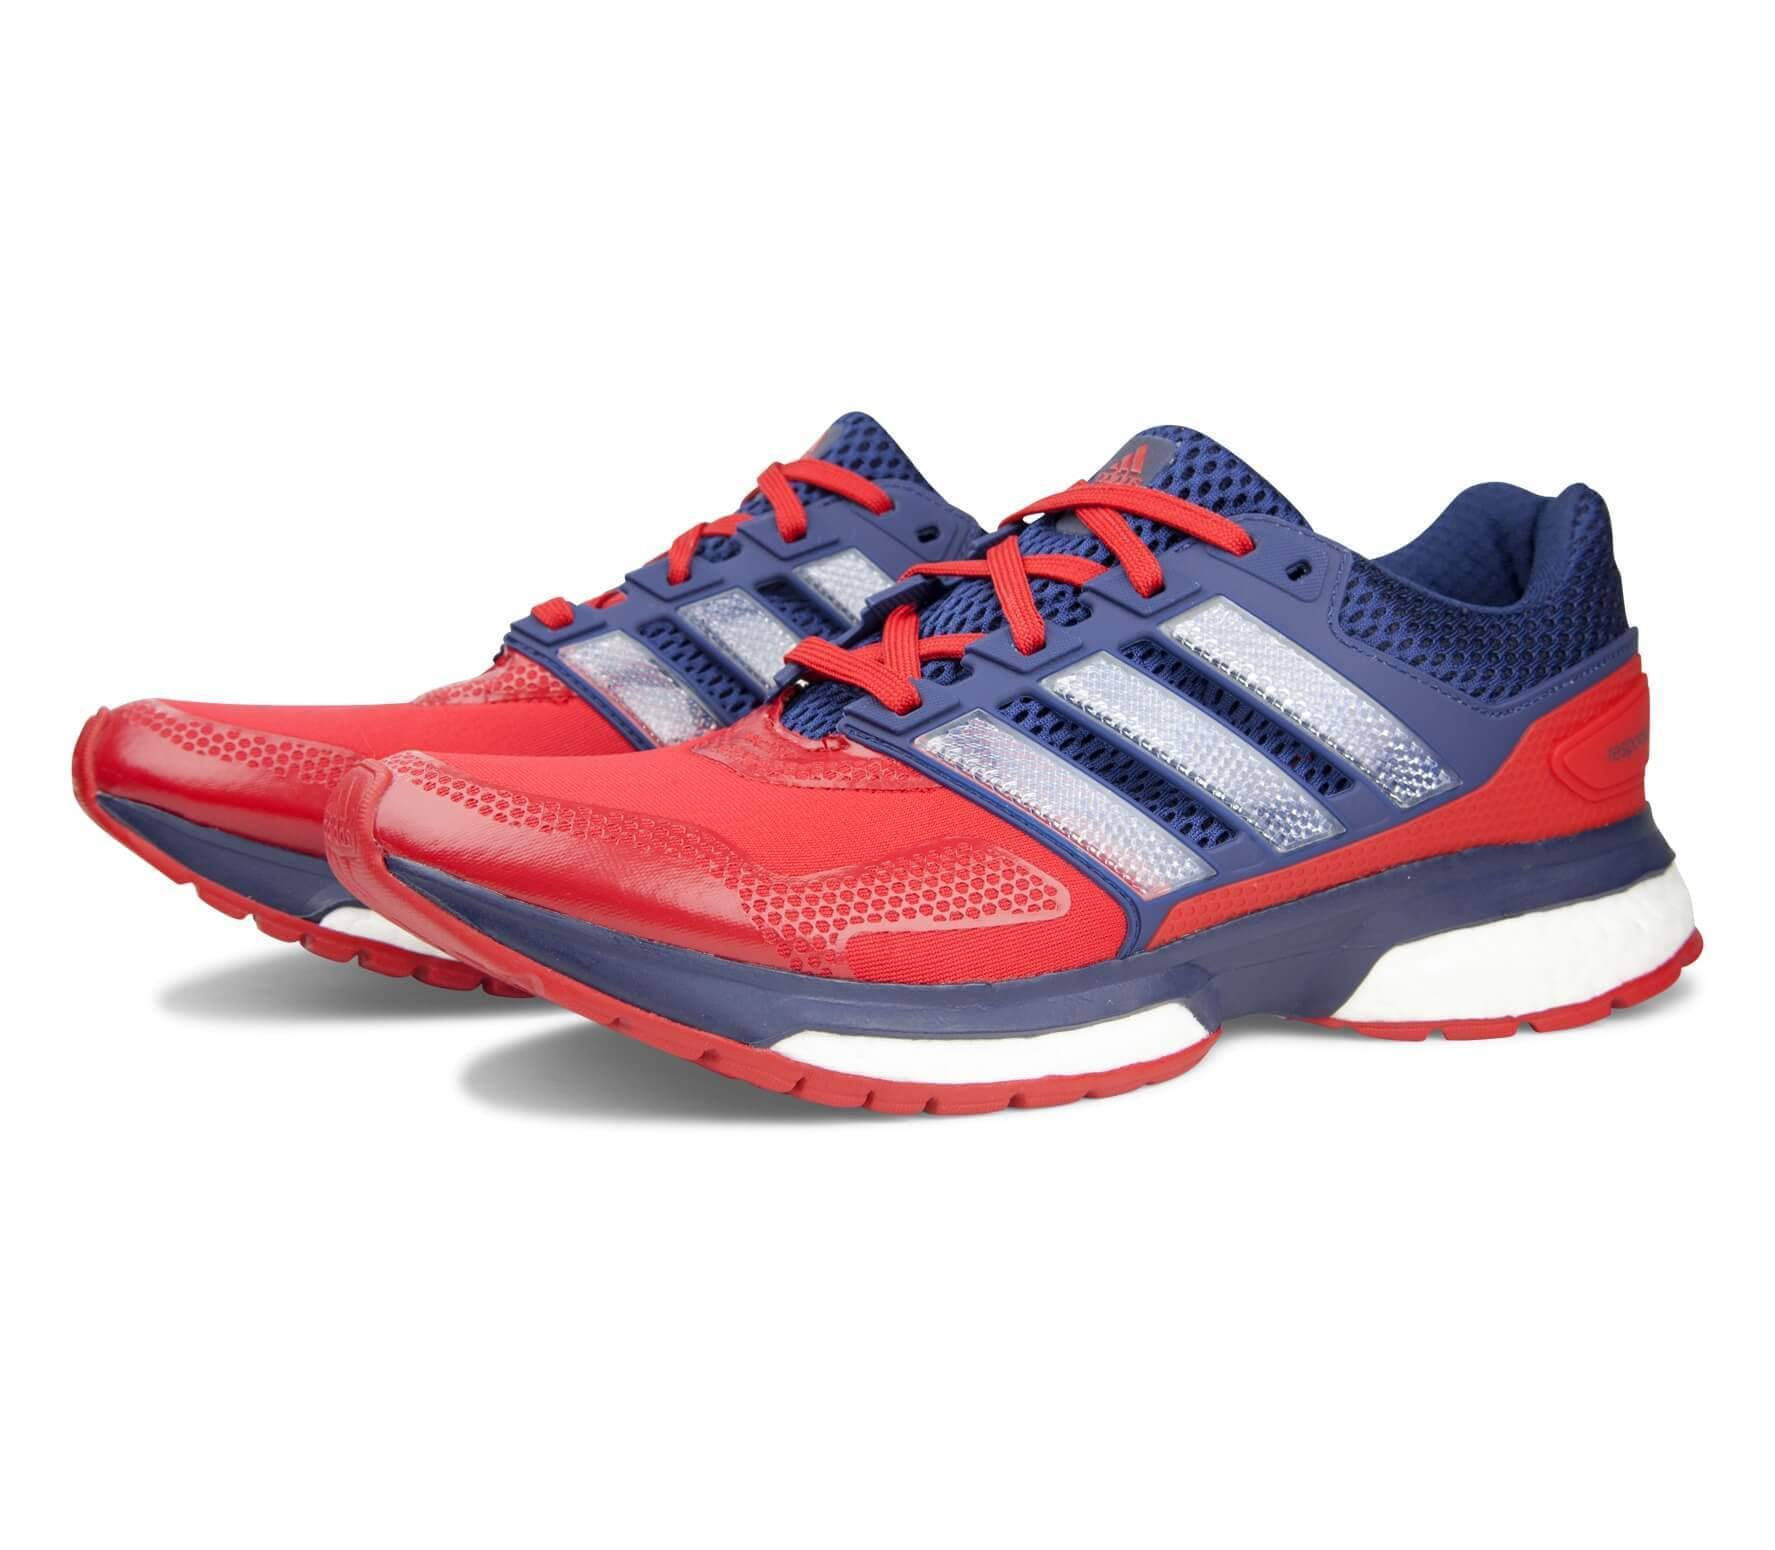 Adidas - Response Boost Techfit 2 men s running shoes (red dark blue ... cbe5c09b5